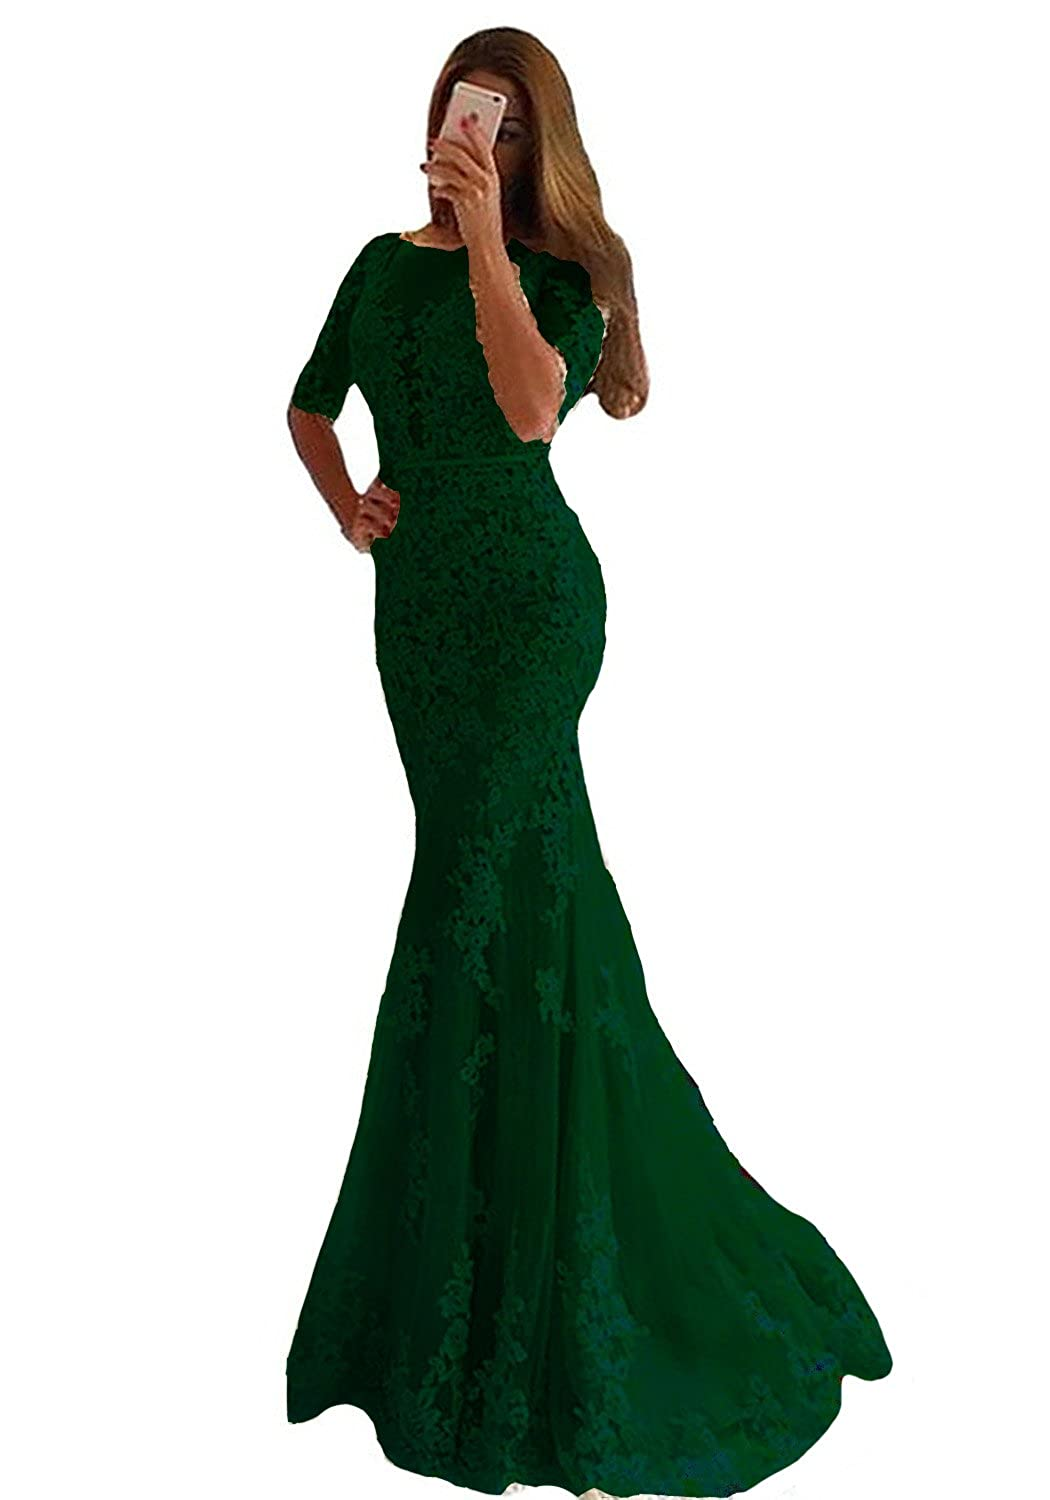 Emerald Green Lemai Women Mermaid Long Lace Half Sleeves Formal Prom Dresses Evening Gowns